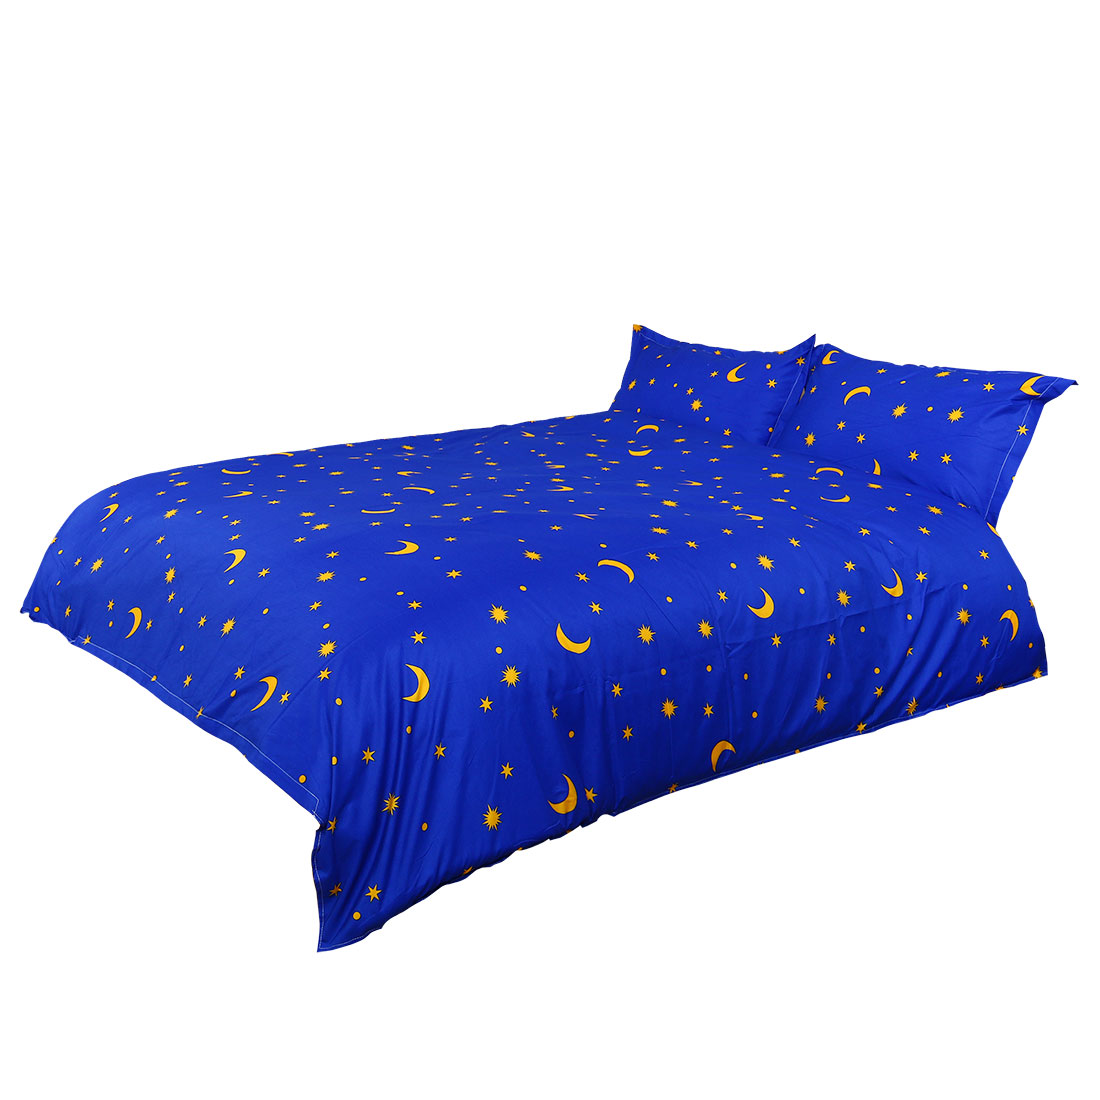 Blue Moon Stars Pattern Duvet Cover Pillowcase Quilt Cover Bedding Set King Size